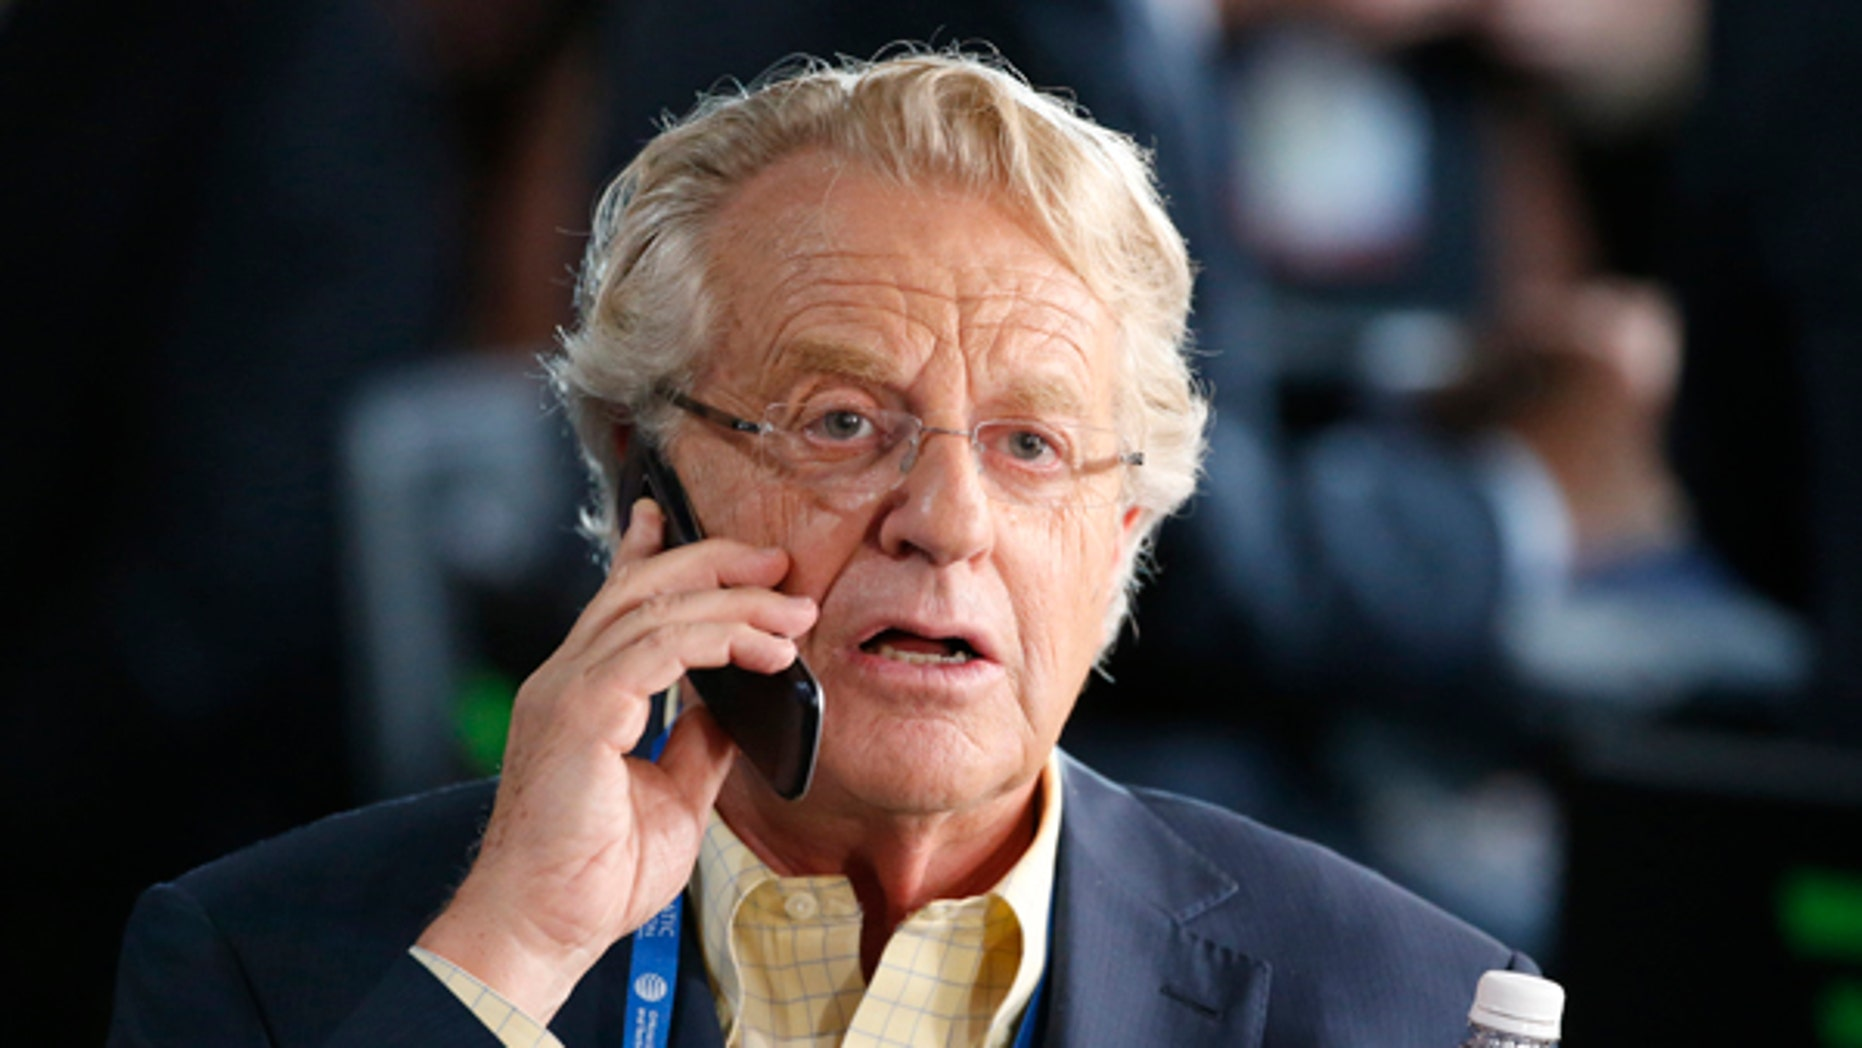 Television personality Jerry Springer at the Democratic National Convention in Philadelphia, Pennsylvania, U.S. July 25, 2016.